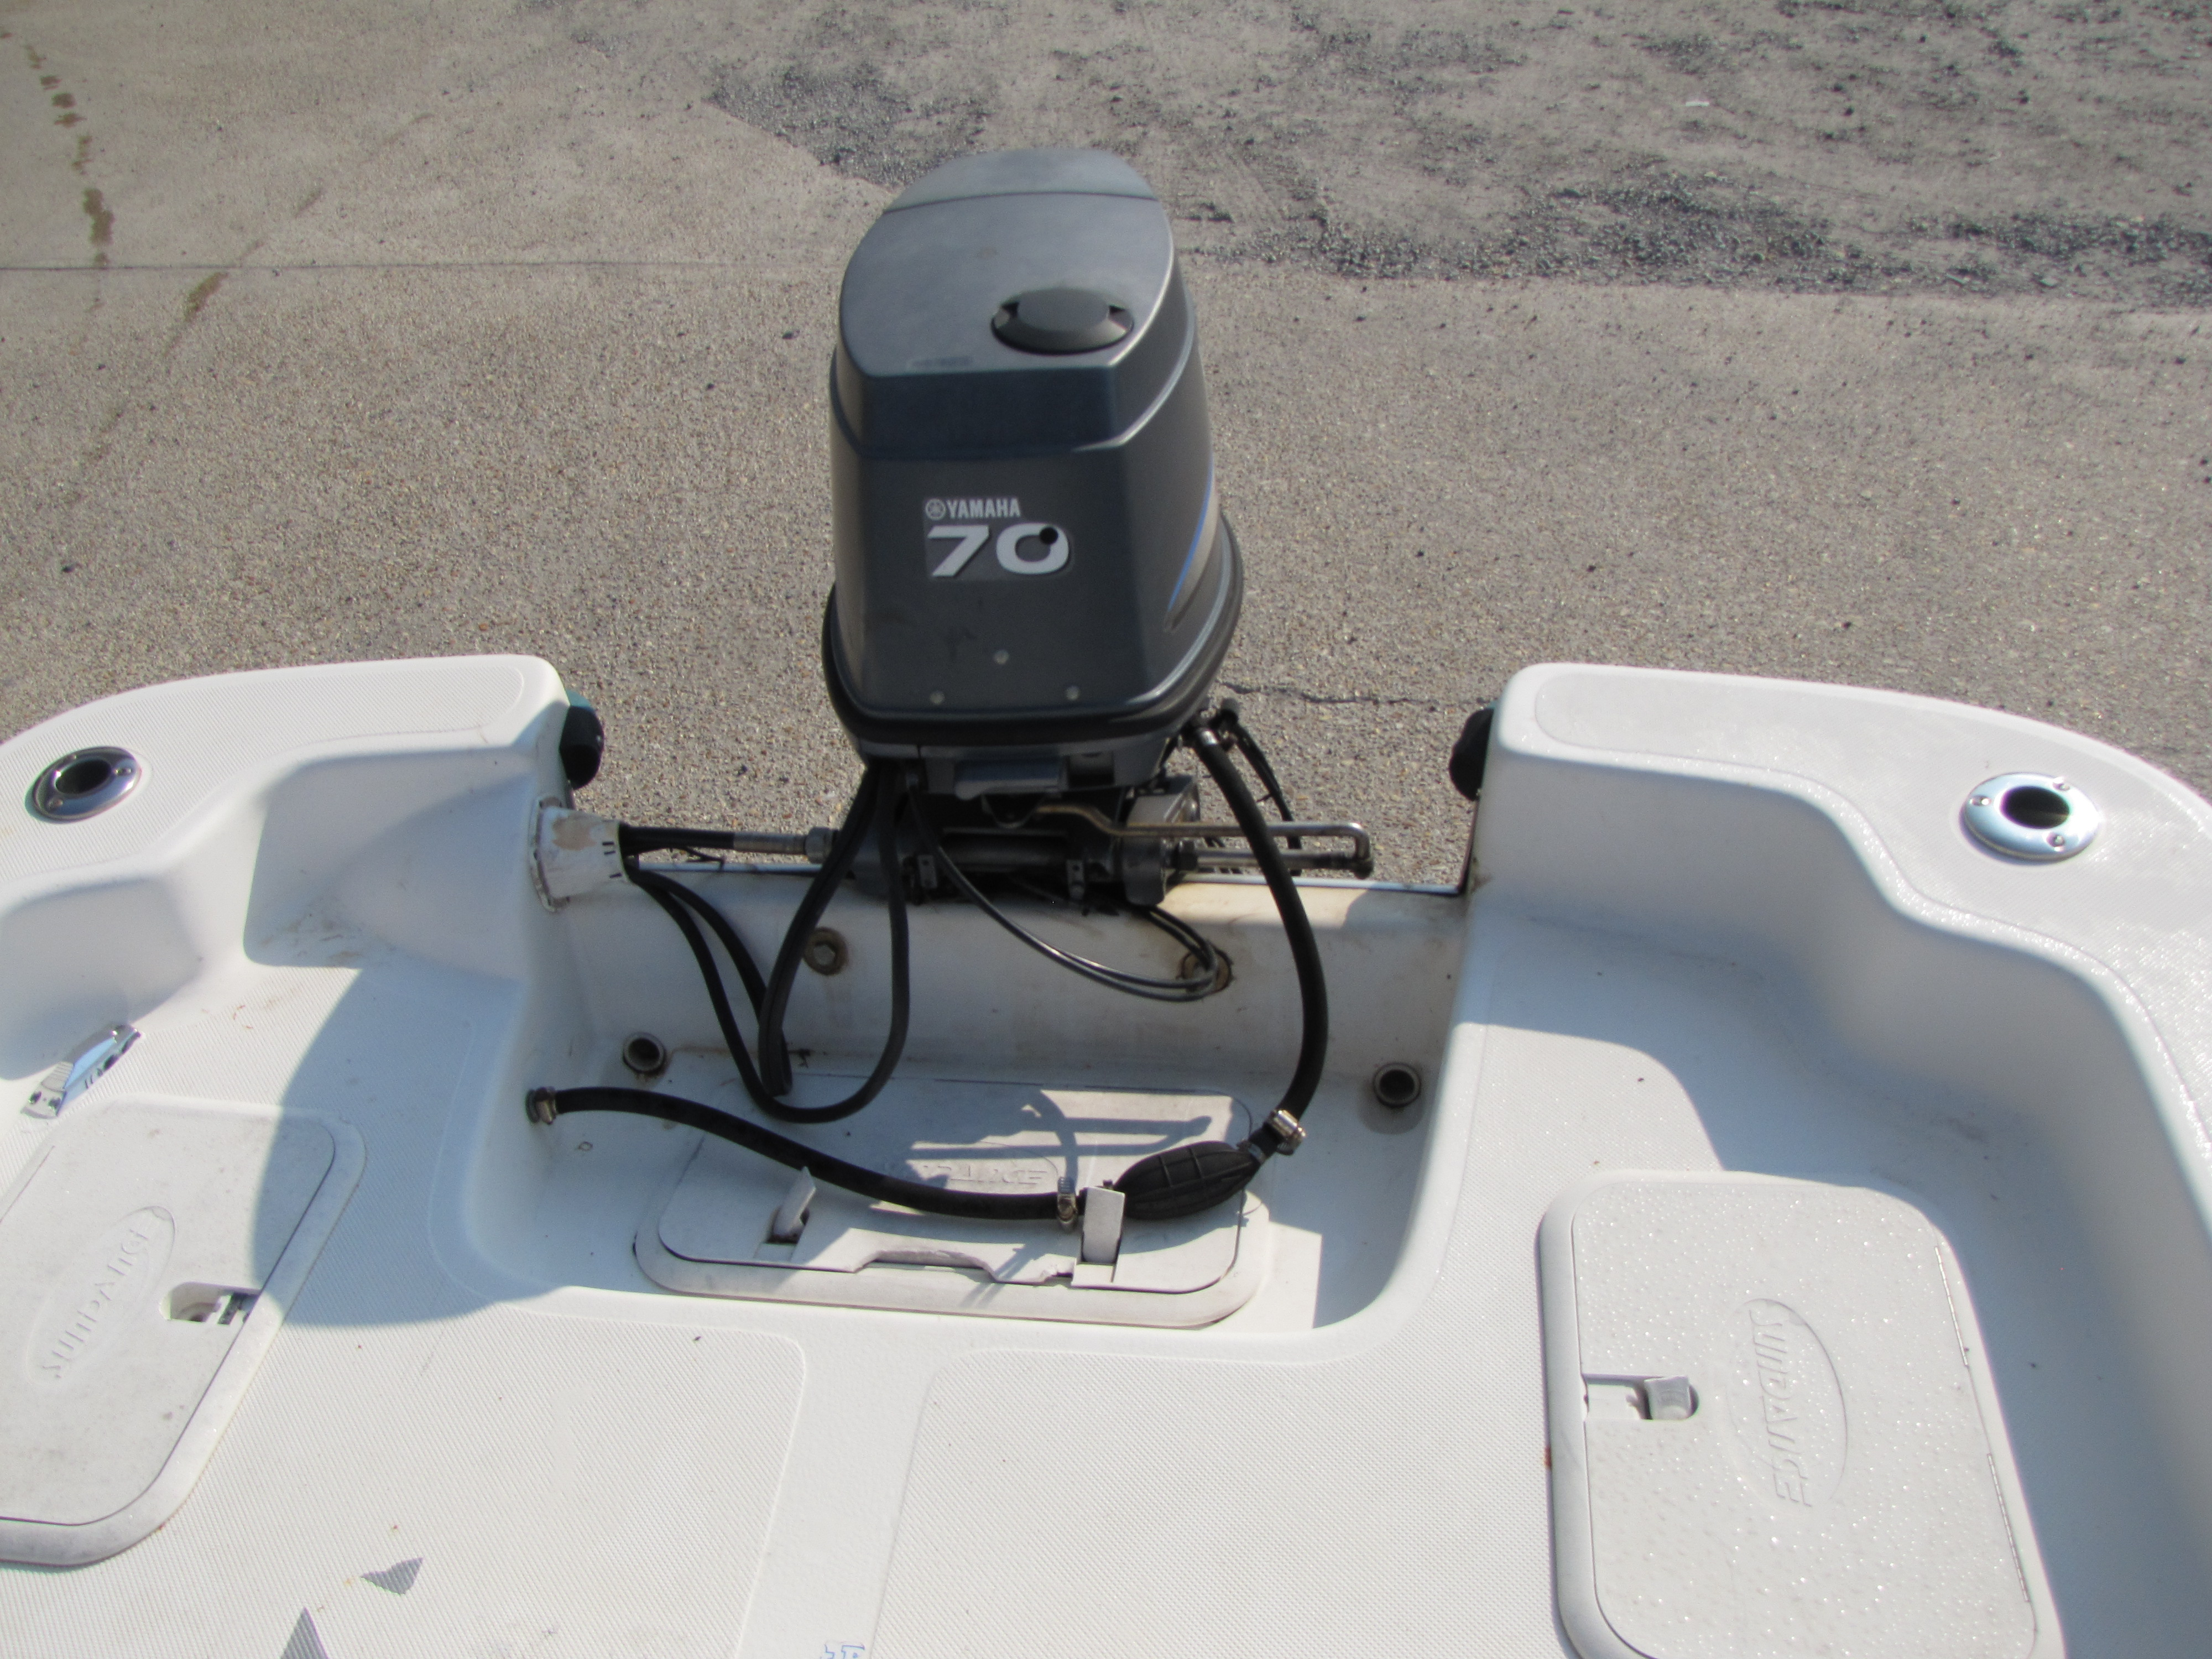 2009 Sundance boat for sale, model of the boat is 17 cc & Image # 8 of 15